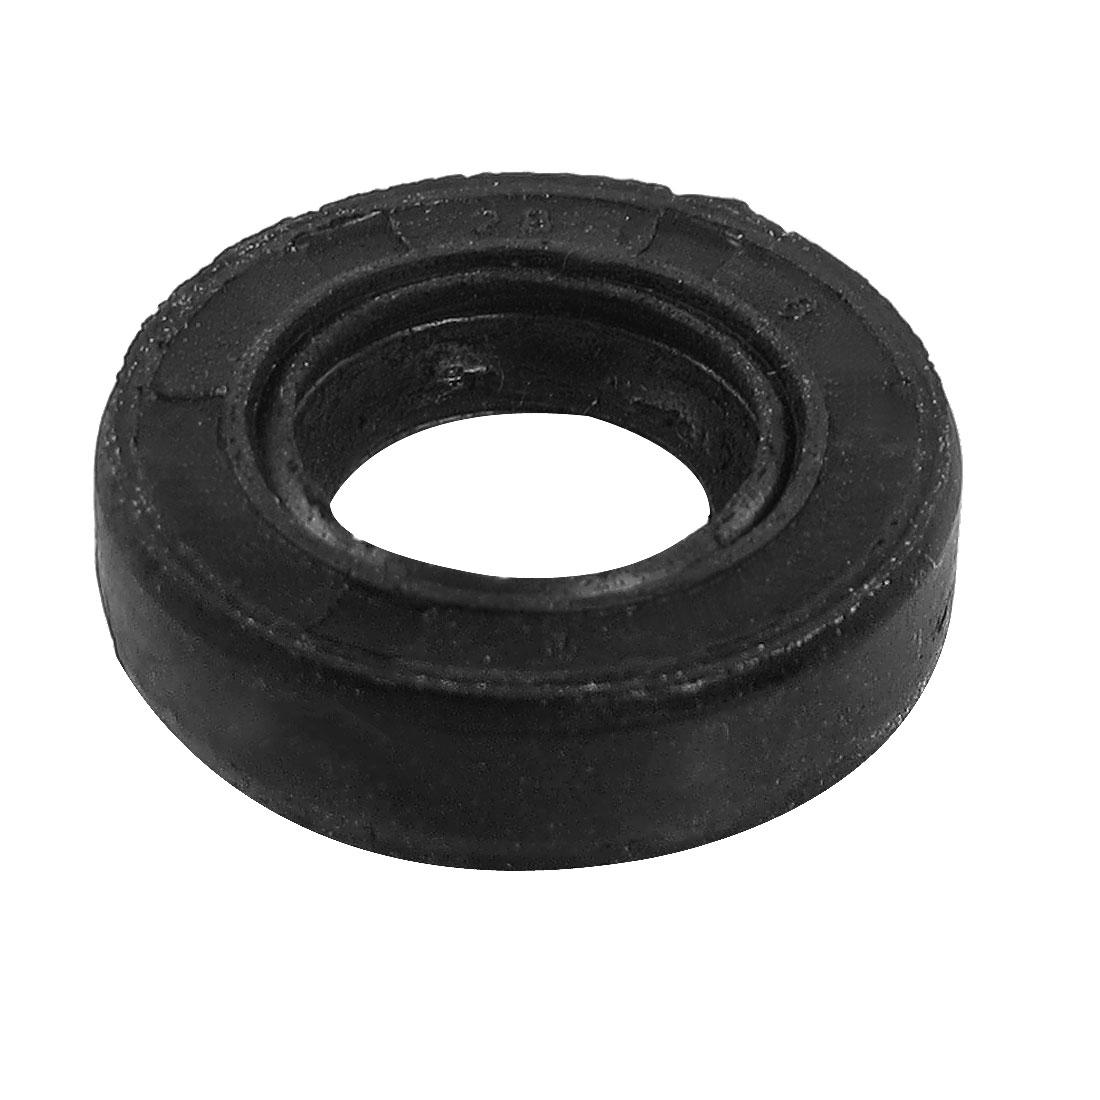 Black Nitrile Rubber Dual Lips Oil Shaft Seal TC 14mm x 28mm x 8mm